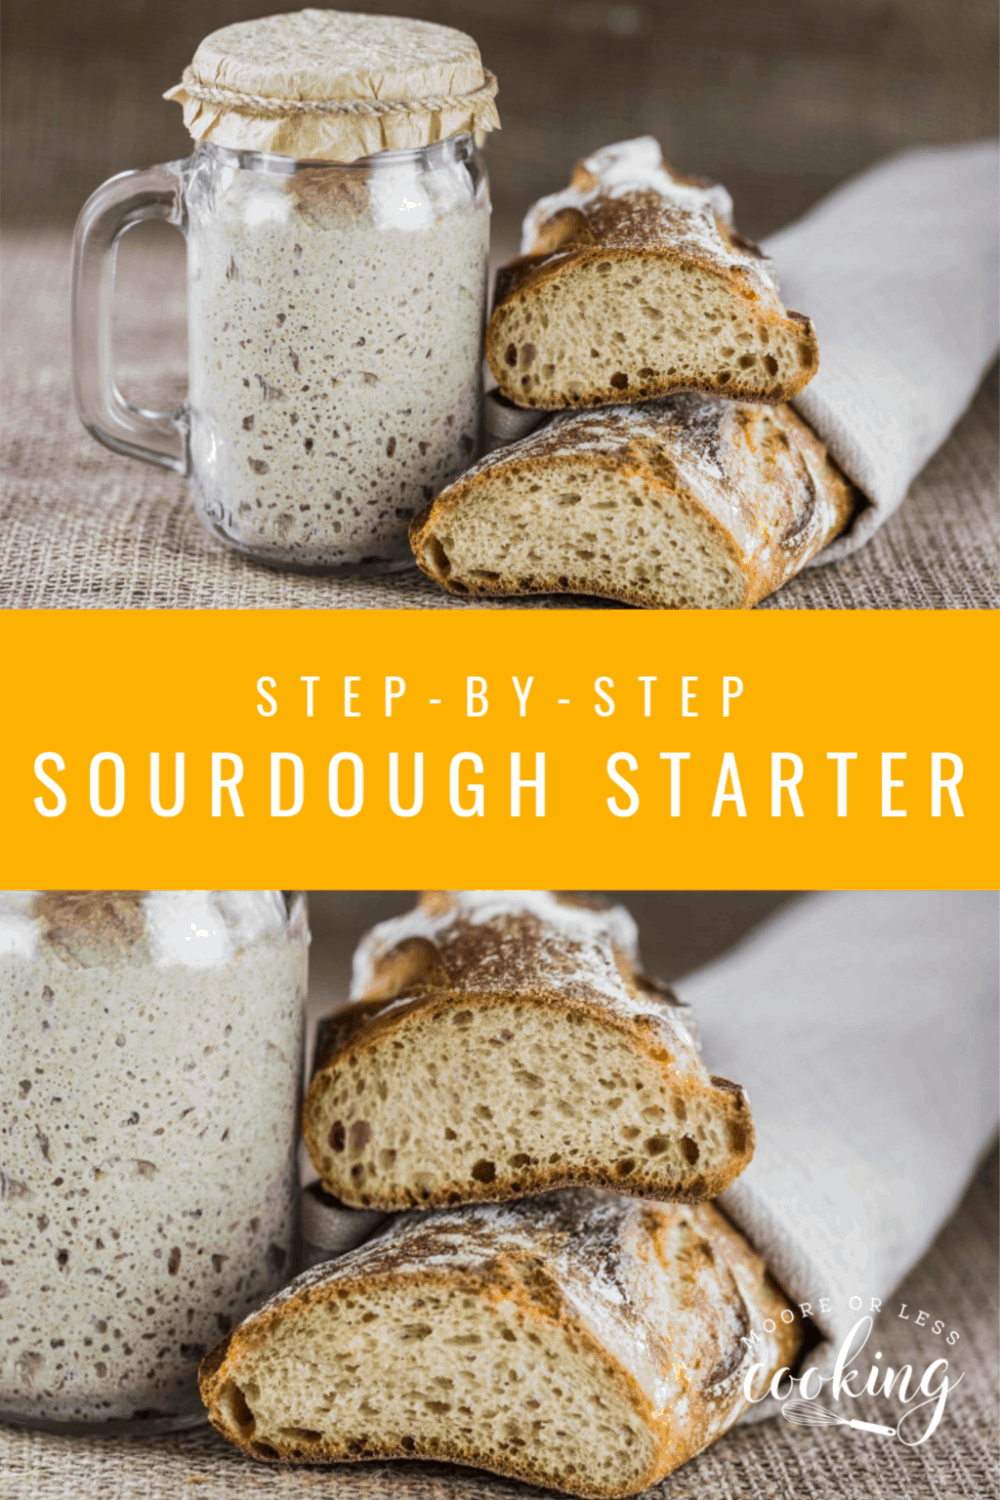 No Yeast? No Problem! Here's How to Make Sourdough Bread Starter Without Yeast! #sourdoughstarter #mooreorlesscooking #noyeast #bread #easyrecipes #sourdough via @Mooreorlesscook